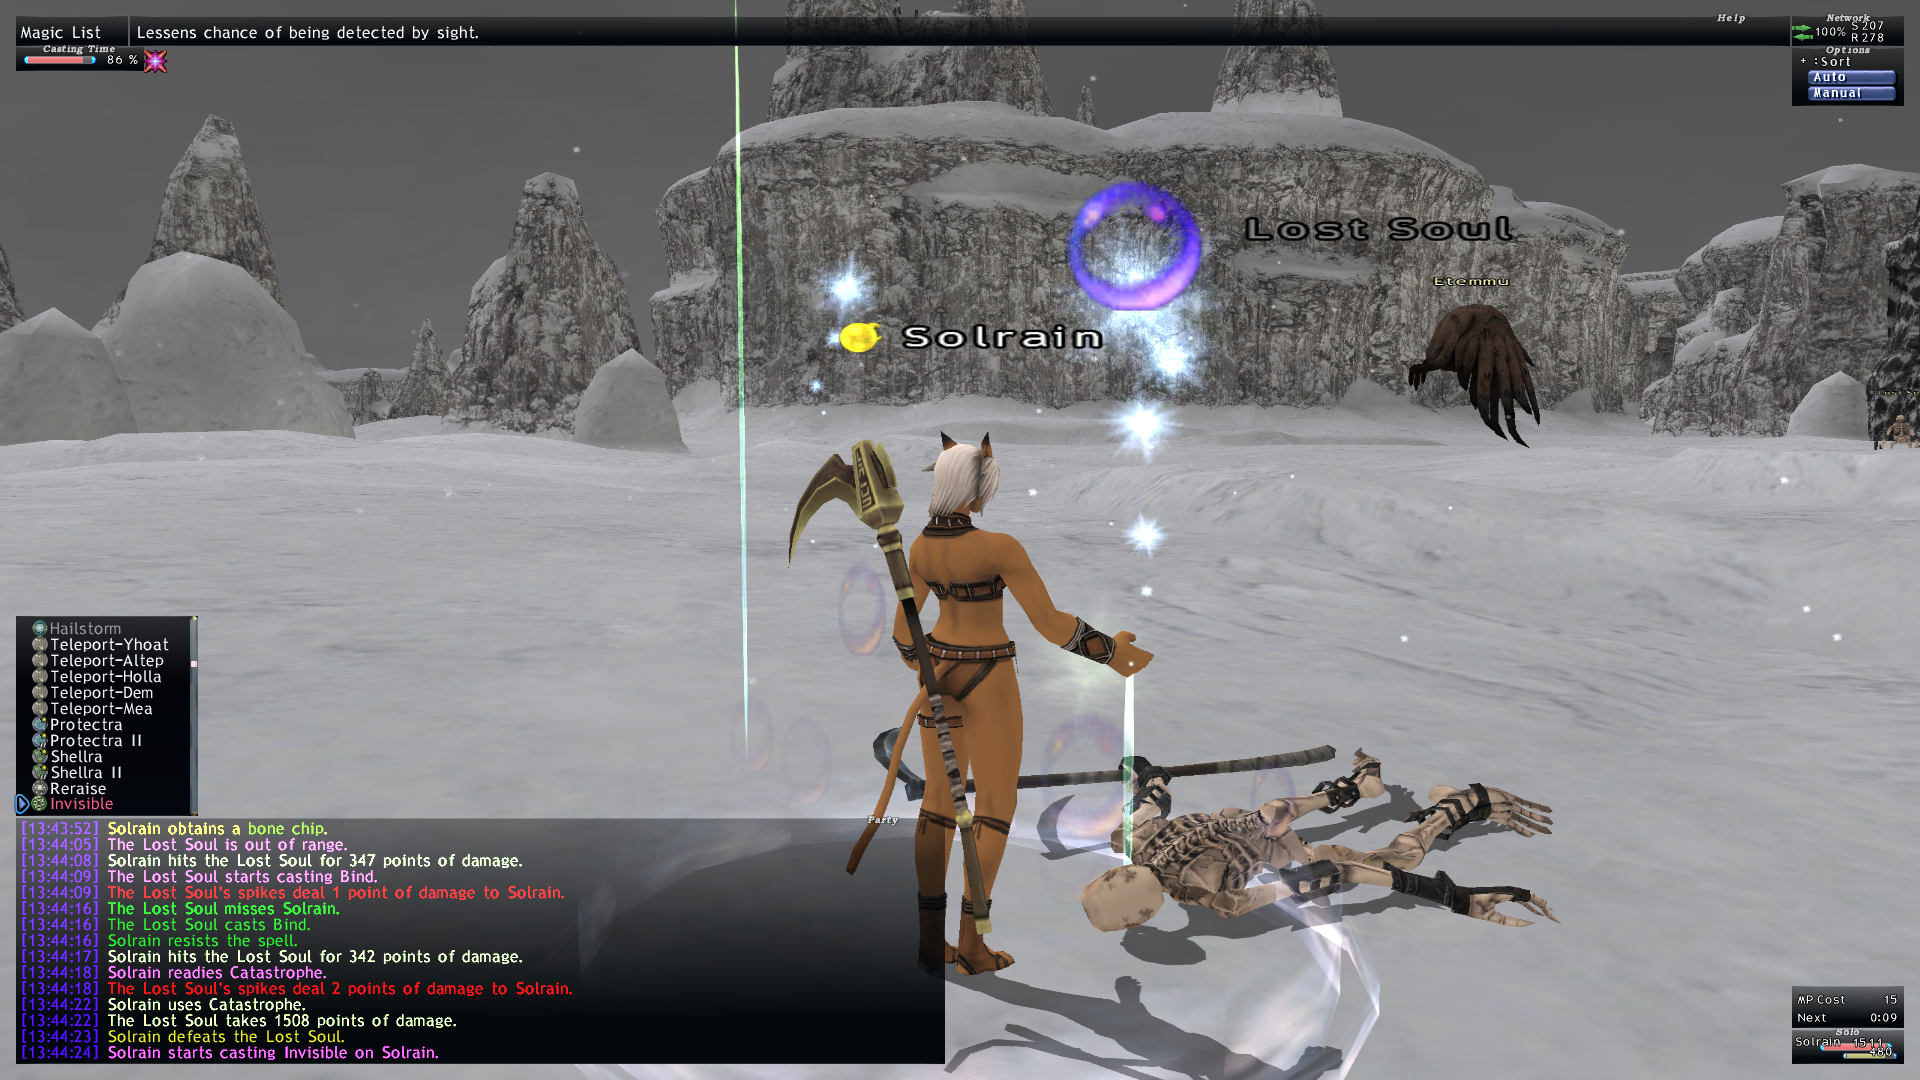 solrain ffxi magic about question macc staves than better weapon fits much does need this being stuff affinity accurate wiki asking sort attack staff doing comparisons between decent just recently finding because confusing with happened what thread whats mean coming back elements different random comparison matt efficiencyeffectiveness summary think nuking could good